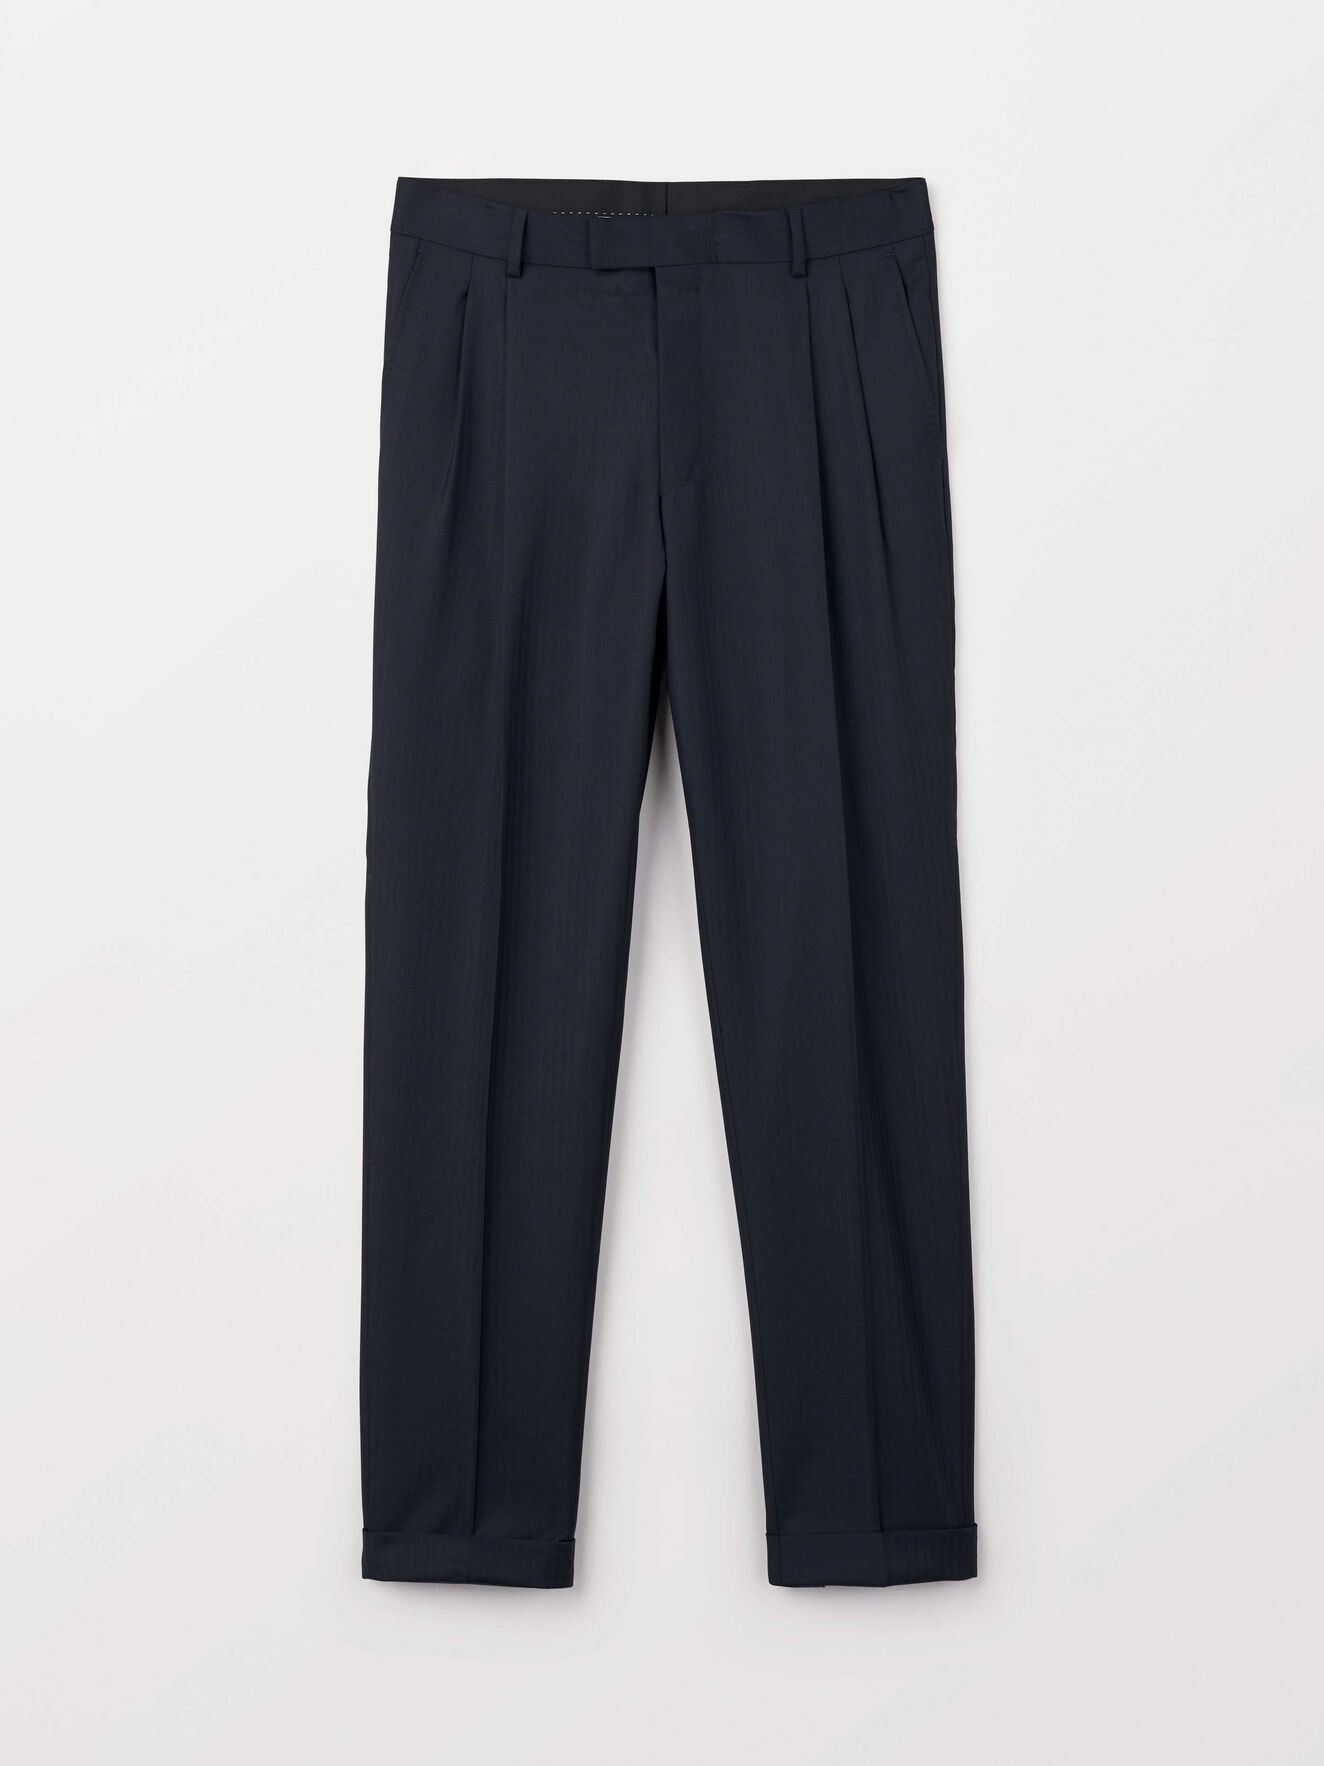 Tivolo Trousers in Royal Blue from Tiger of Sweden